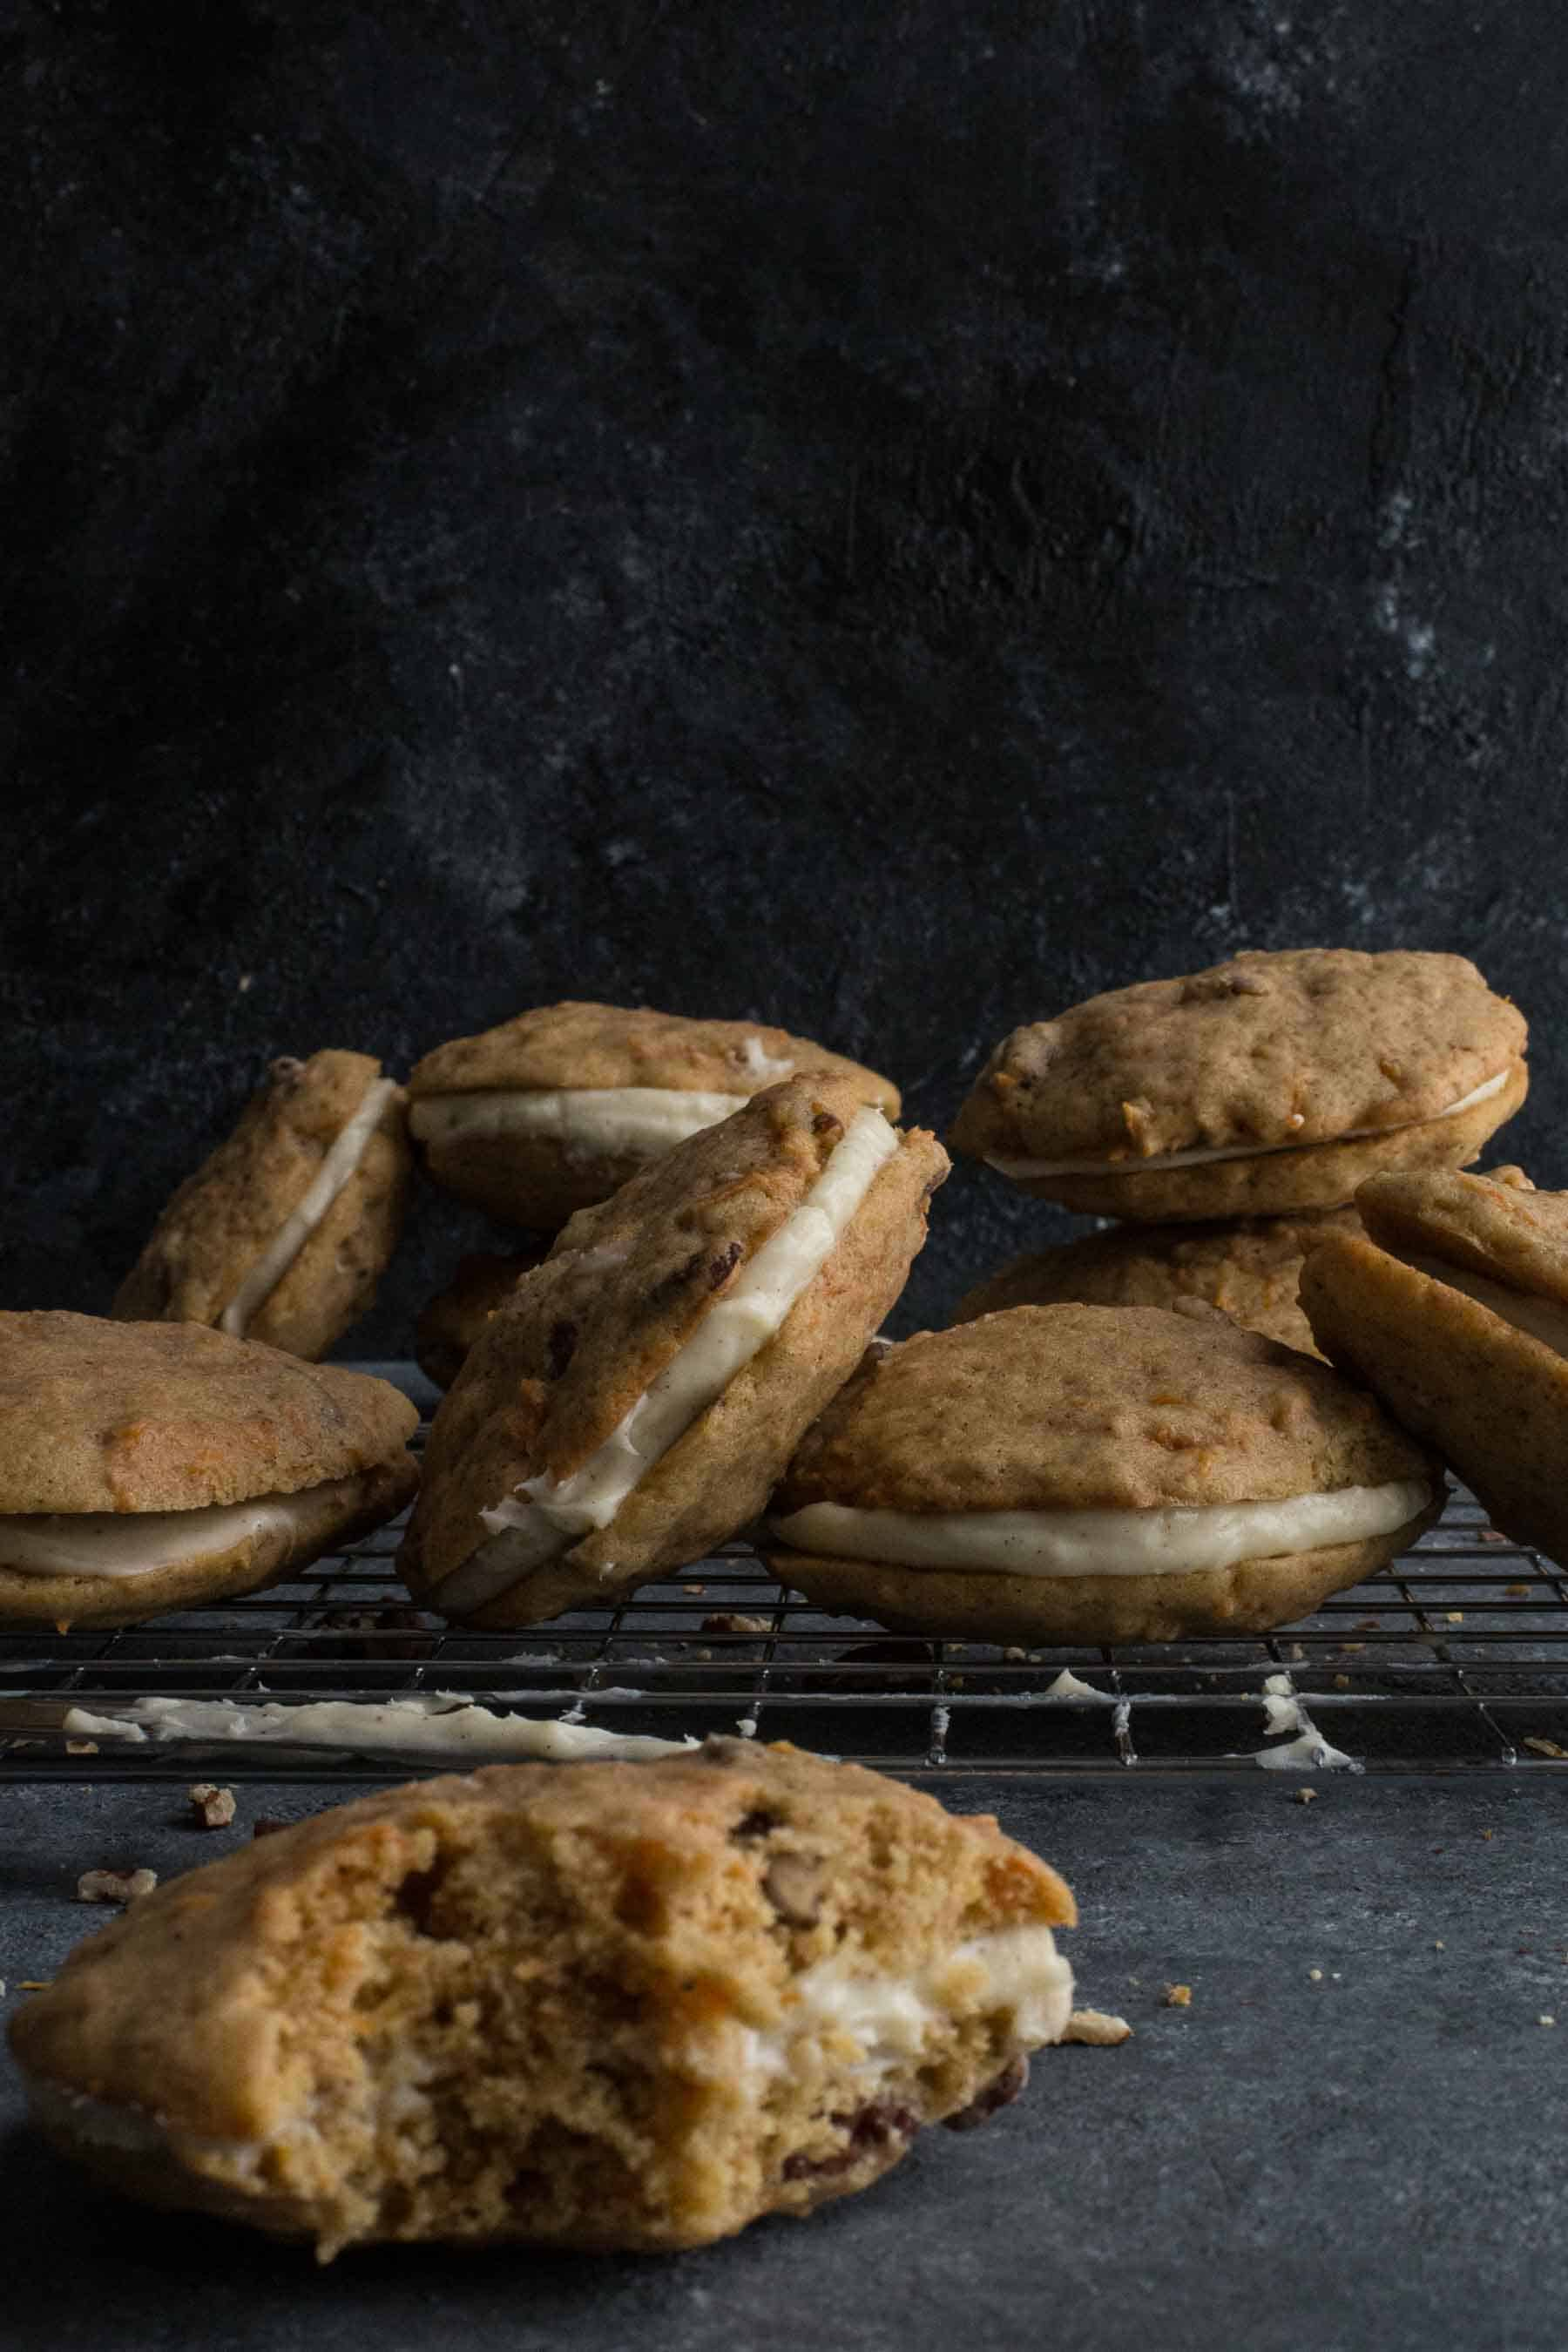 Photos of cookies with Aperture f/22